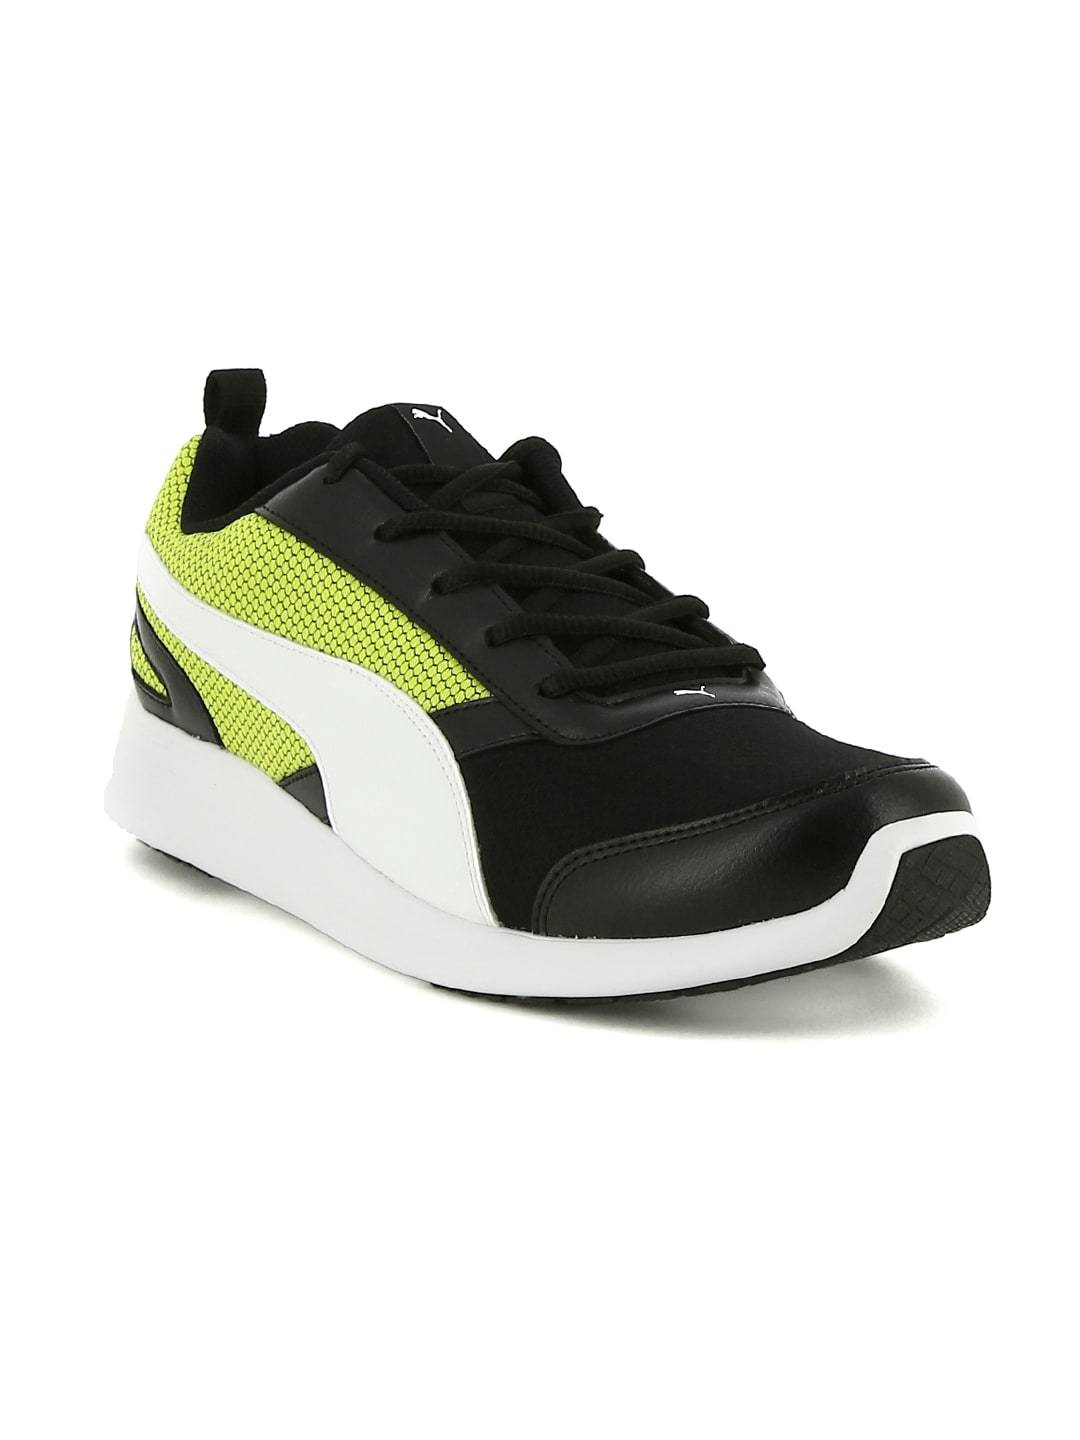 920fadee5a5637 Puma Sports Shoes